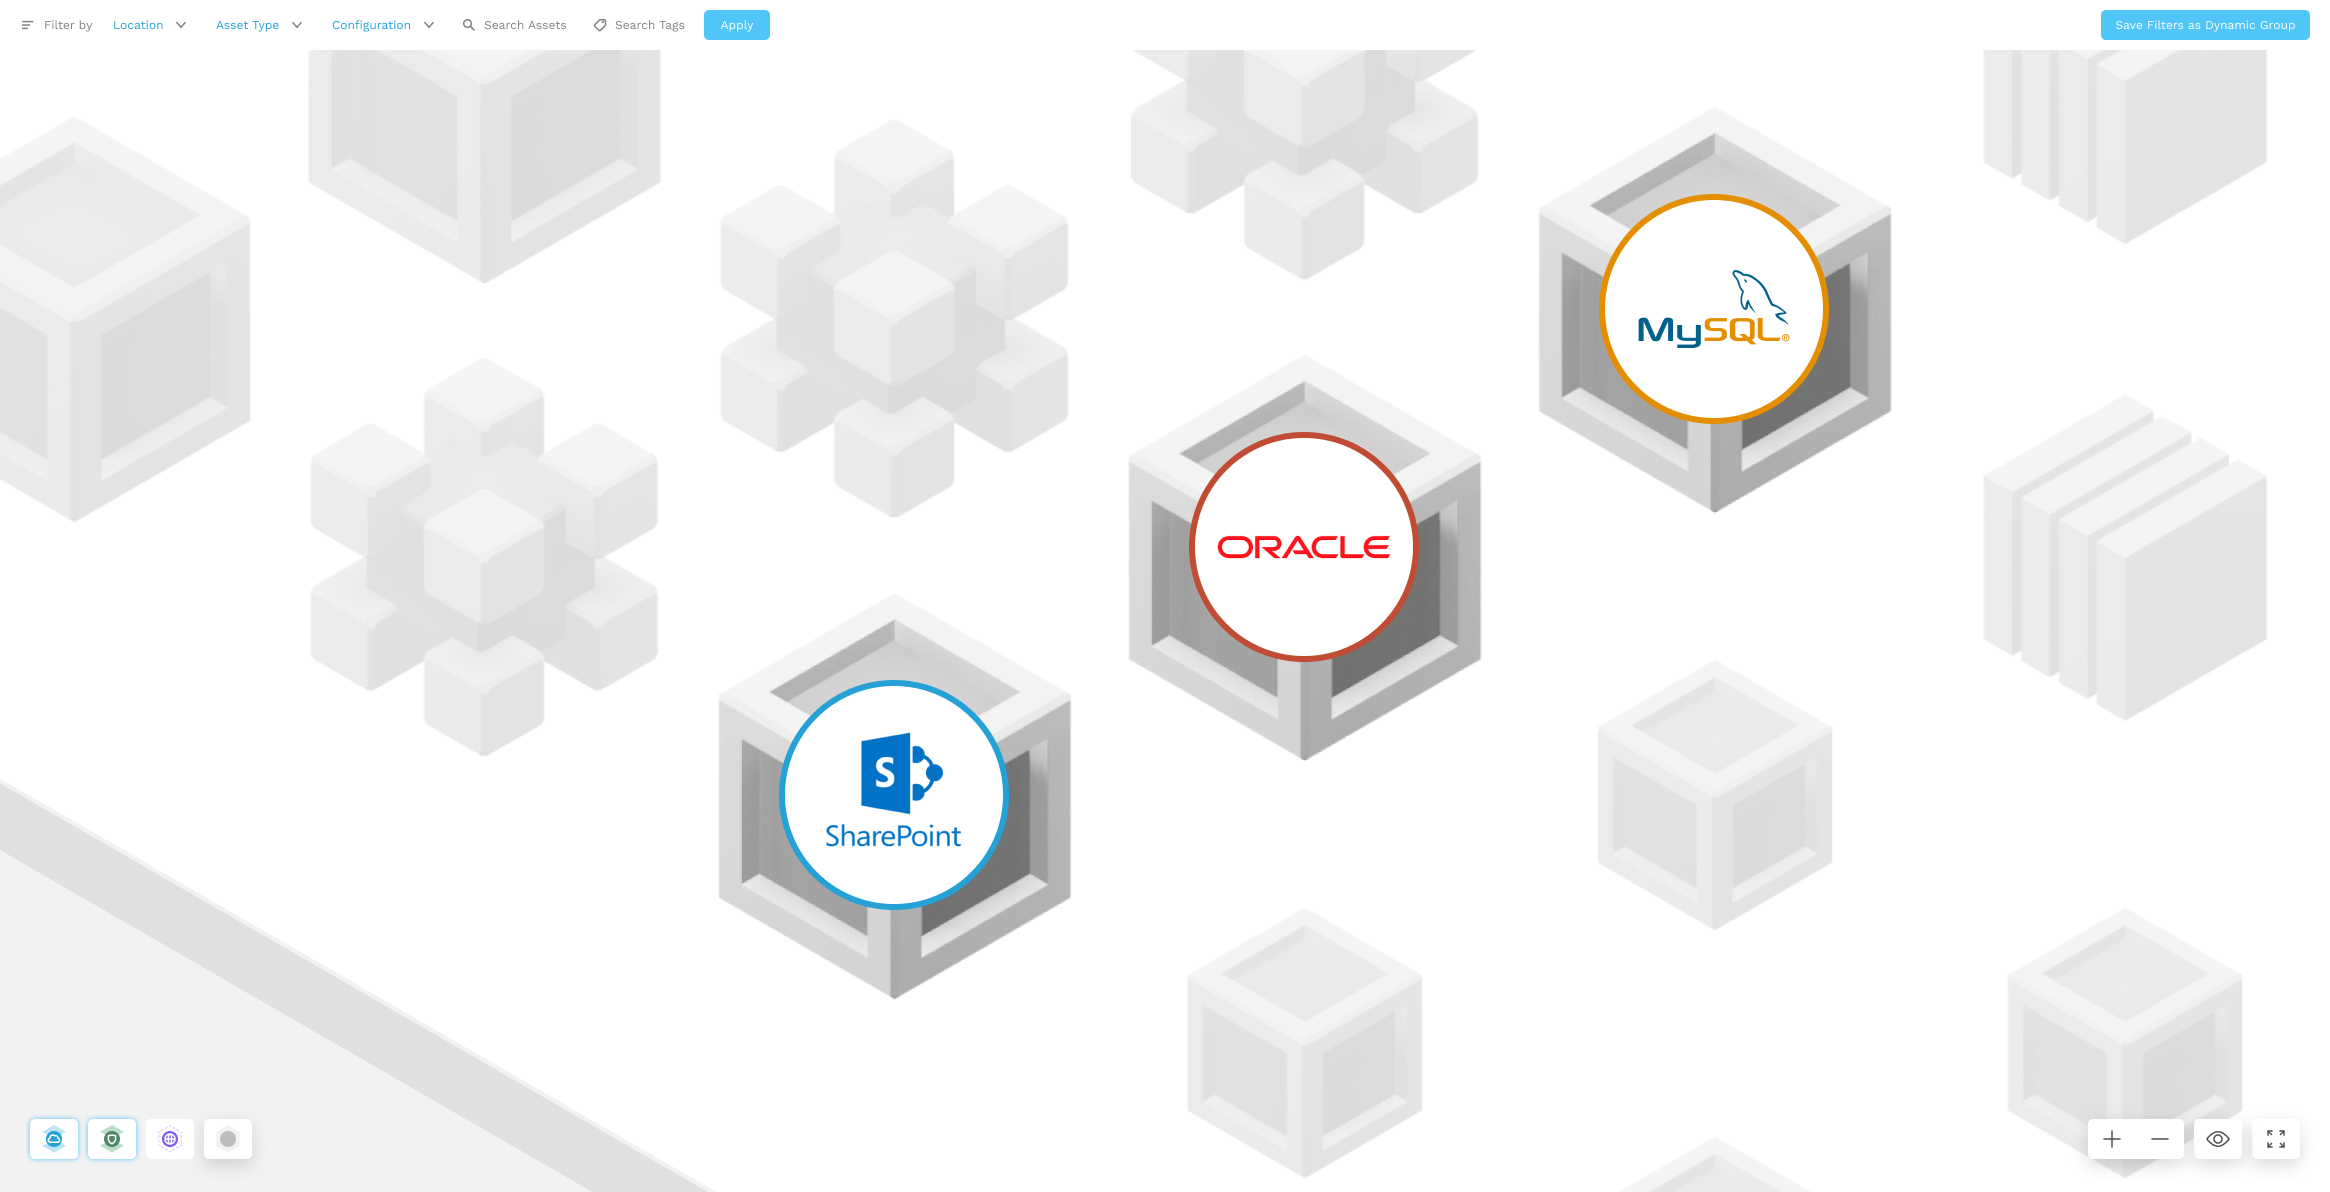 Map with data stores - SharePoint, Oracle, MySQL